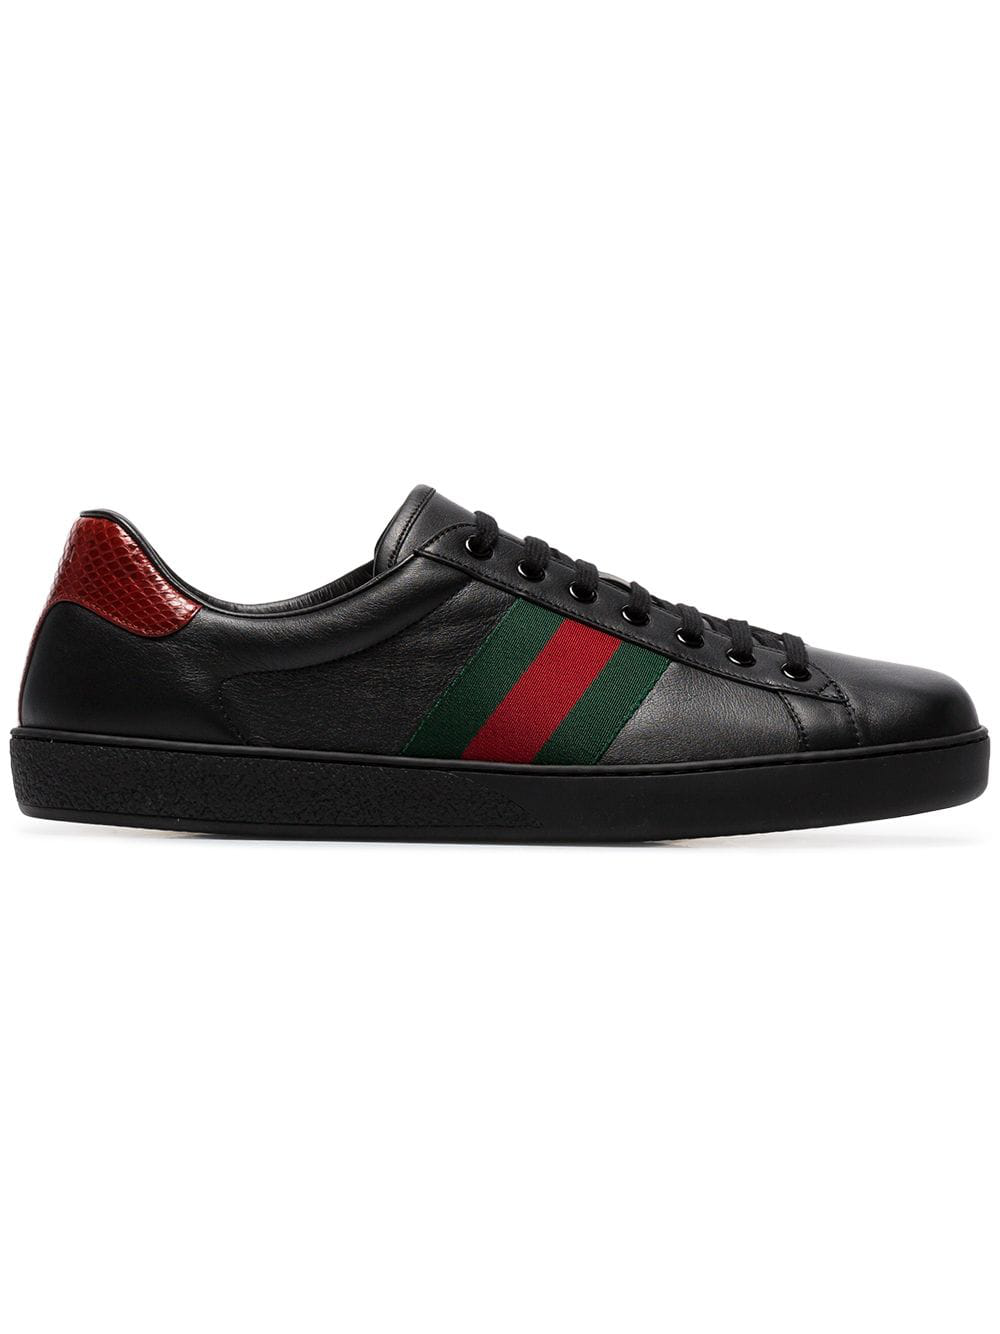 a118f3f3621 Gucci Ace Snake-Trimmed Leather Sneakers - Black